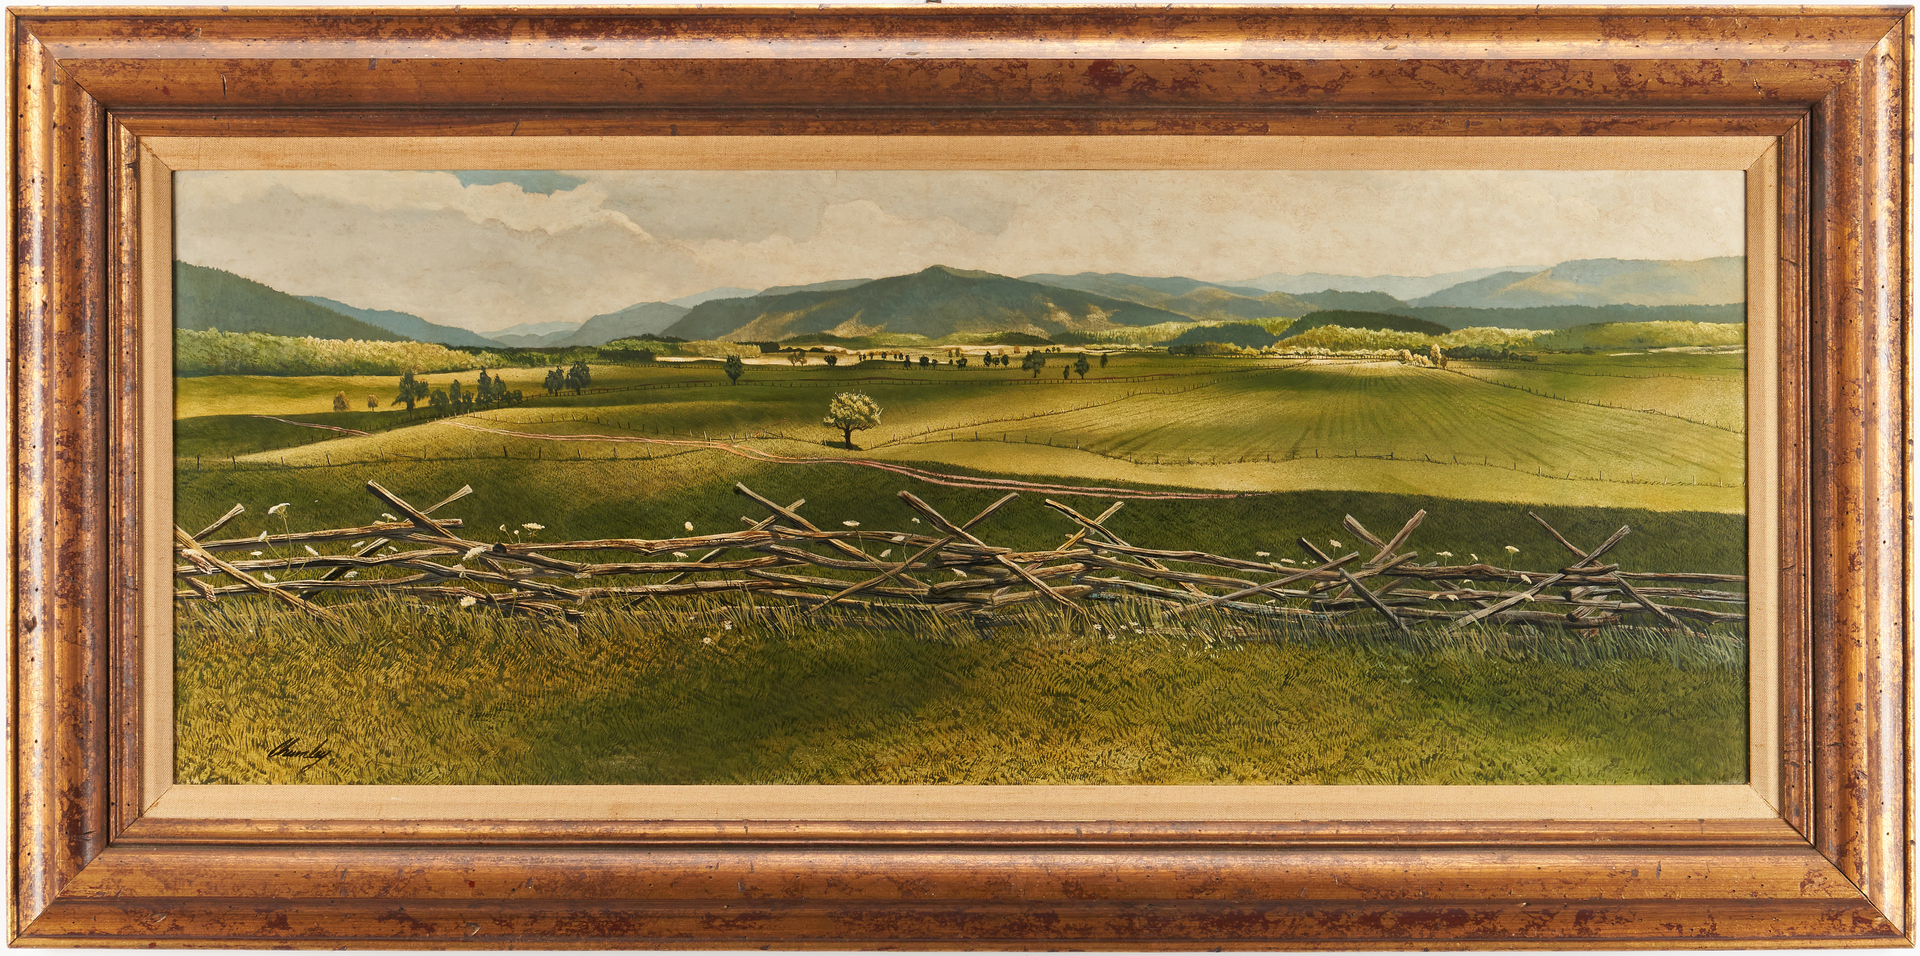 Lot 166: John Chumley Cades Cove Oil on Board Painting